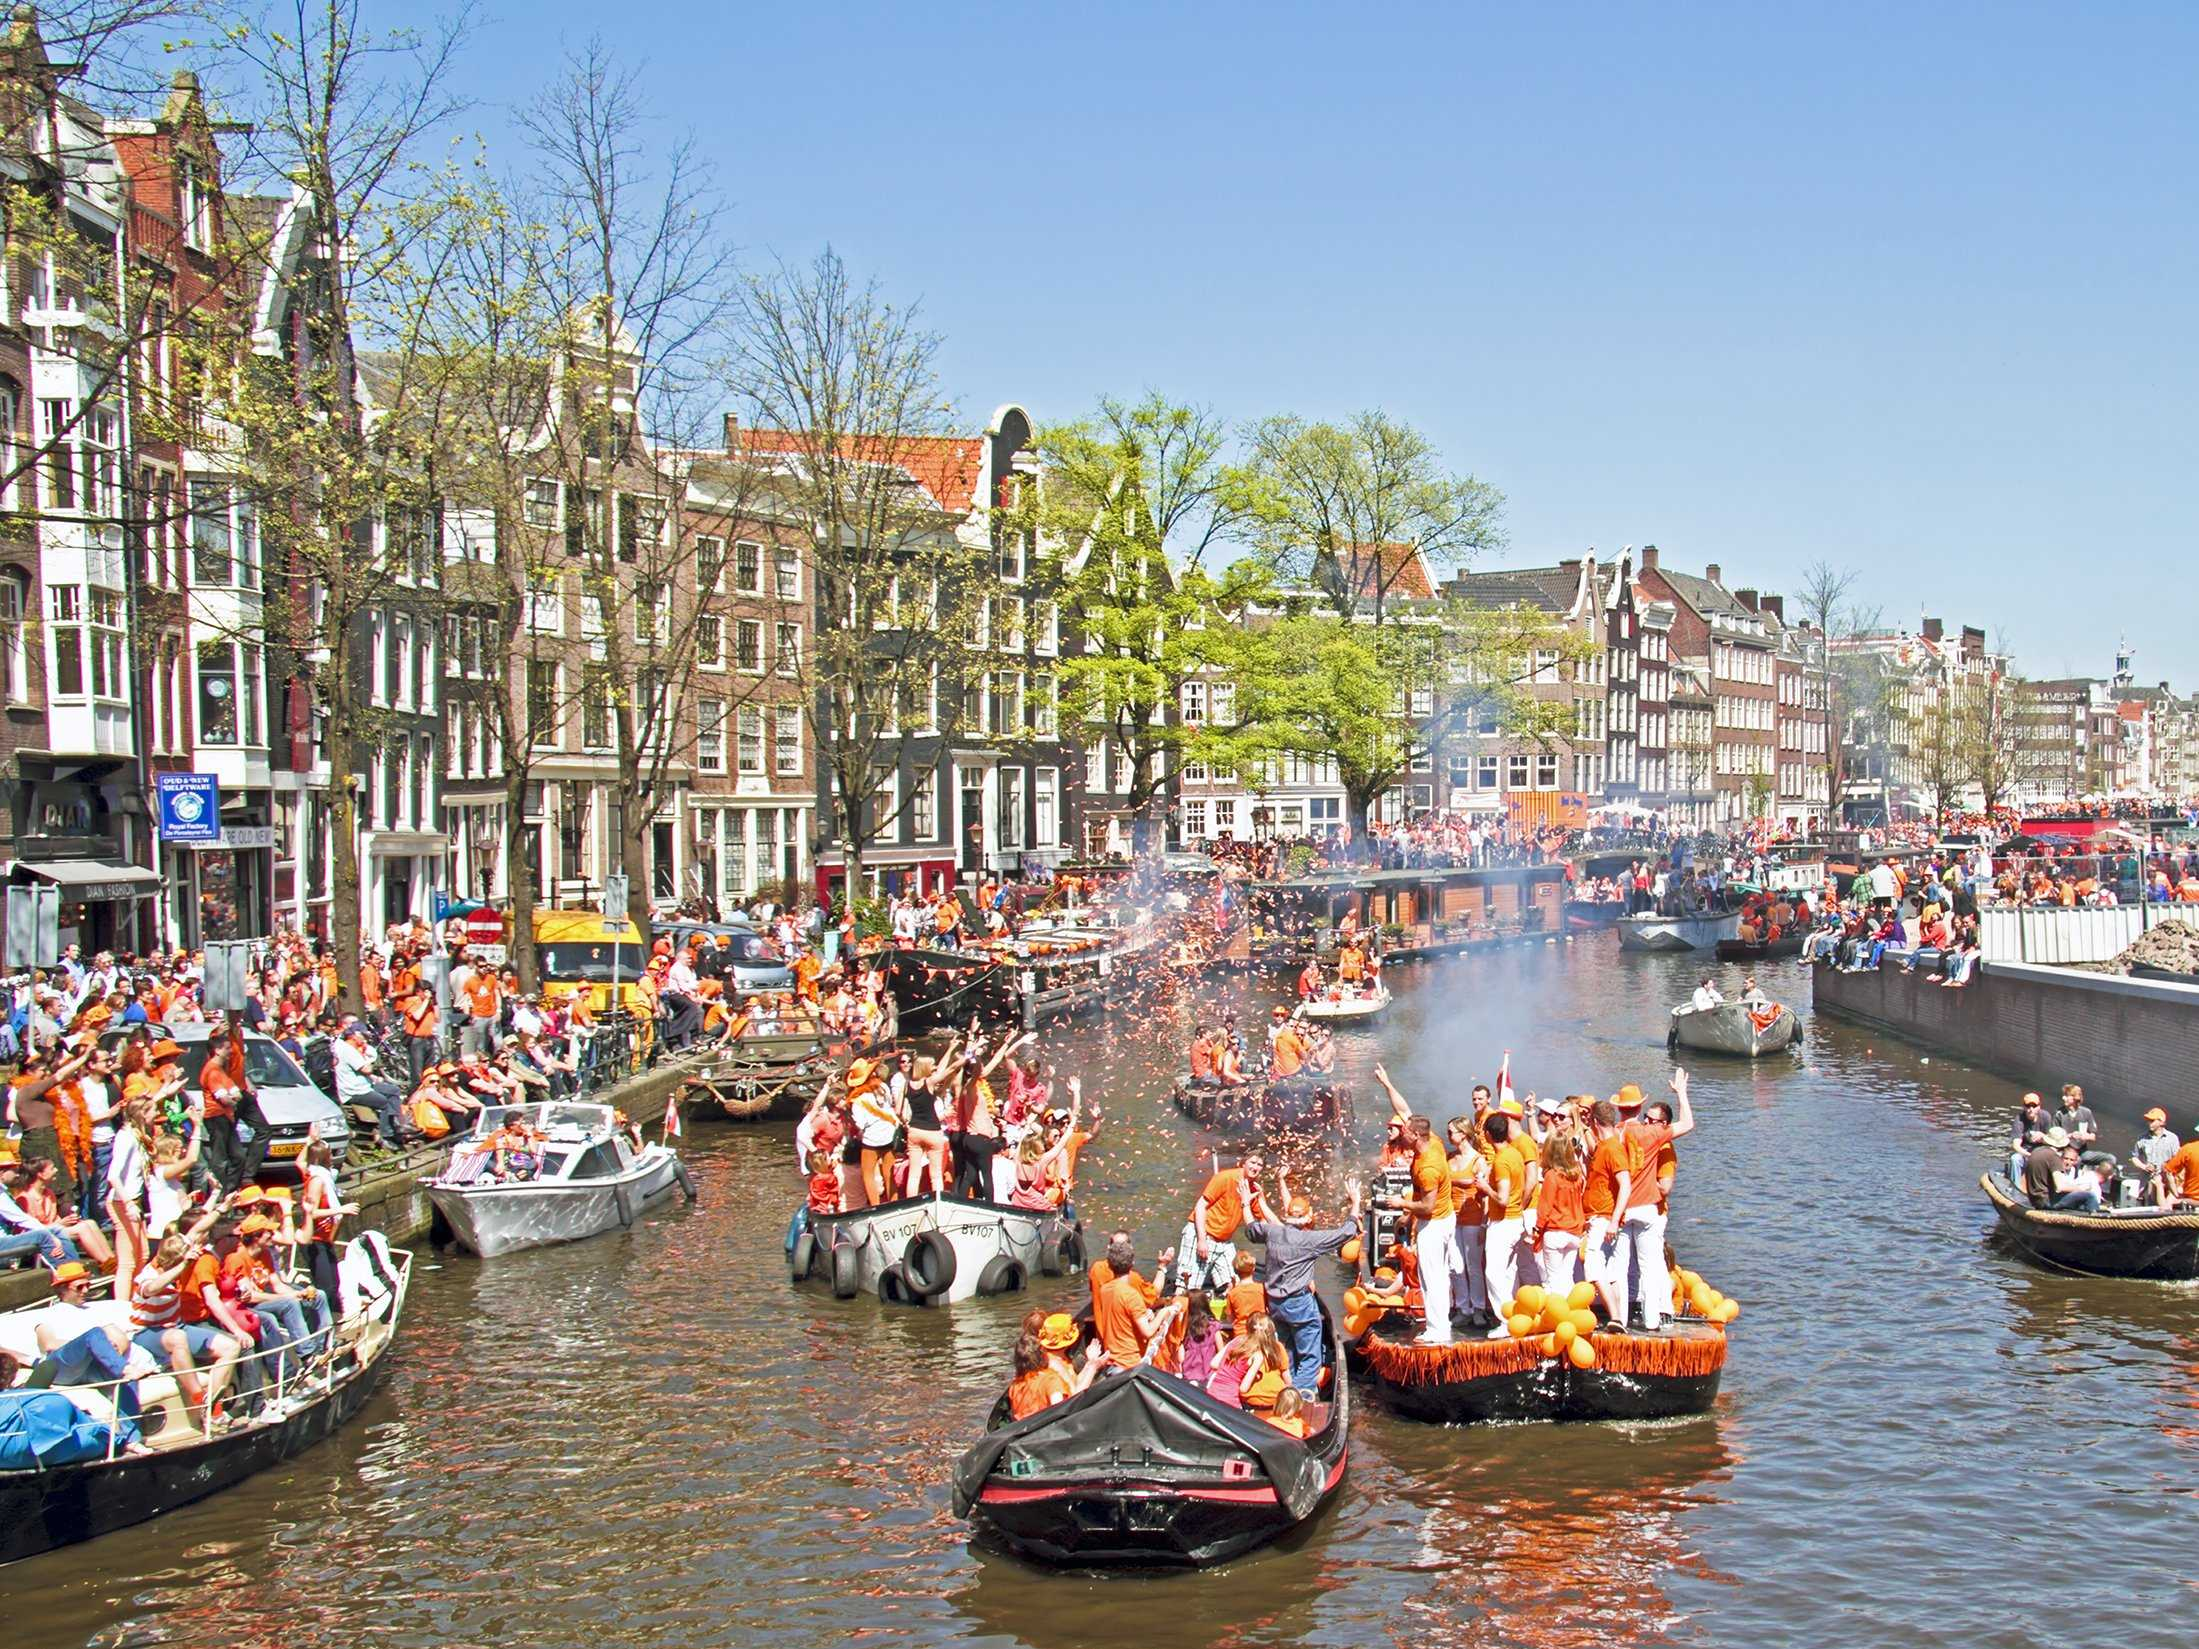 Toast to the royalty of Amsterdam on Queen's Day, when people dress in orange and party all night in The Netherlands' capital.